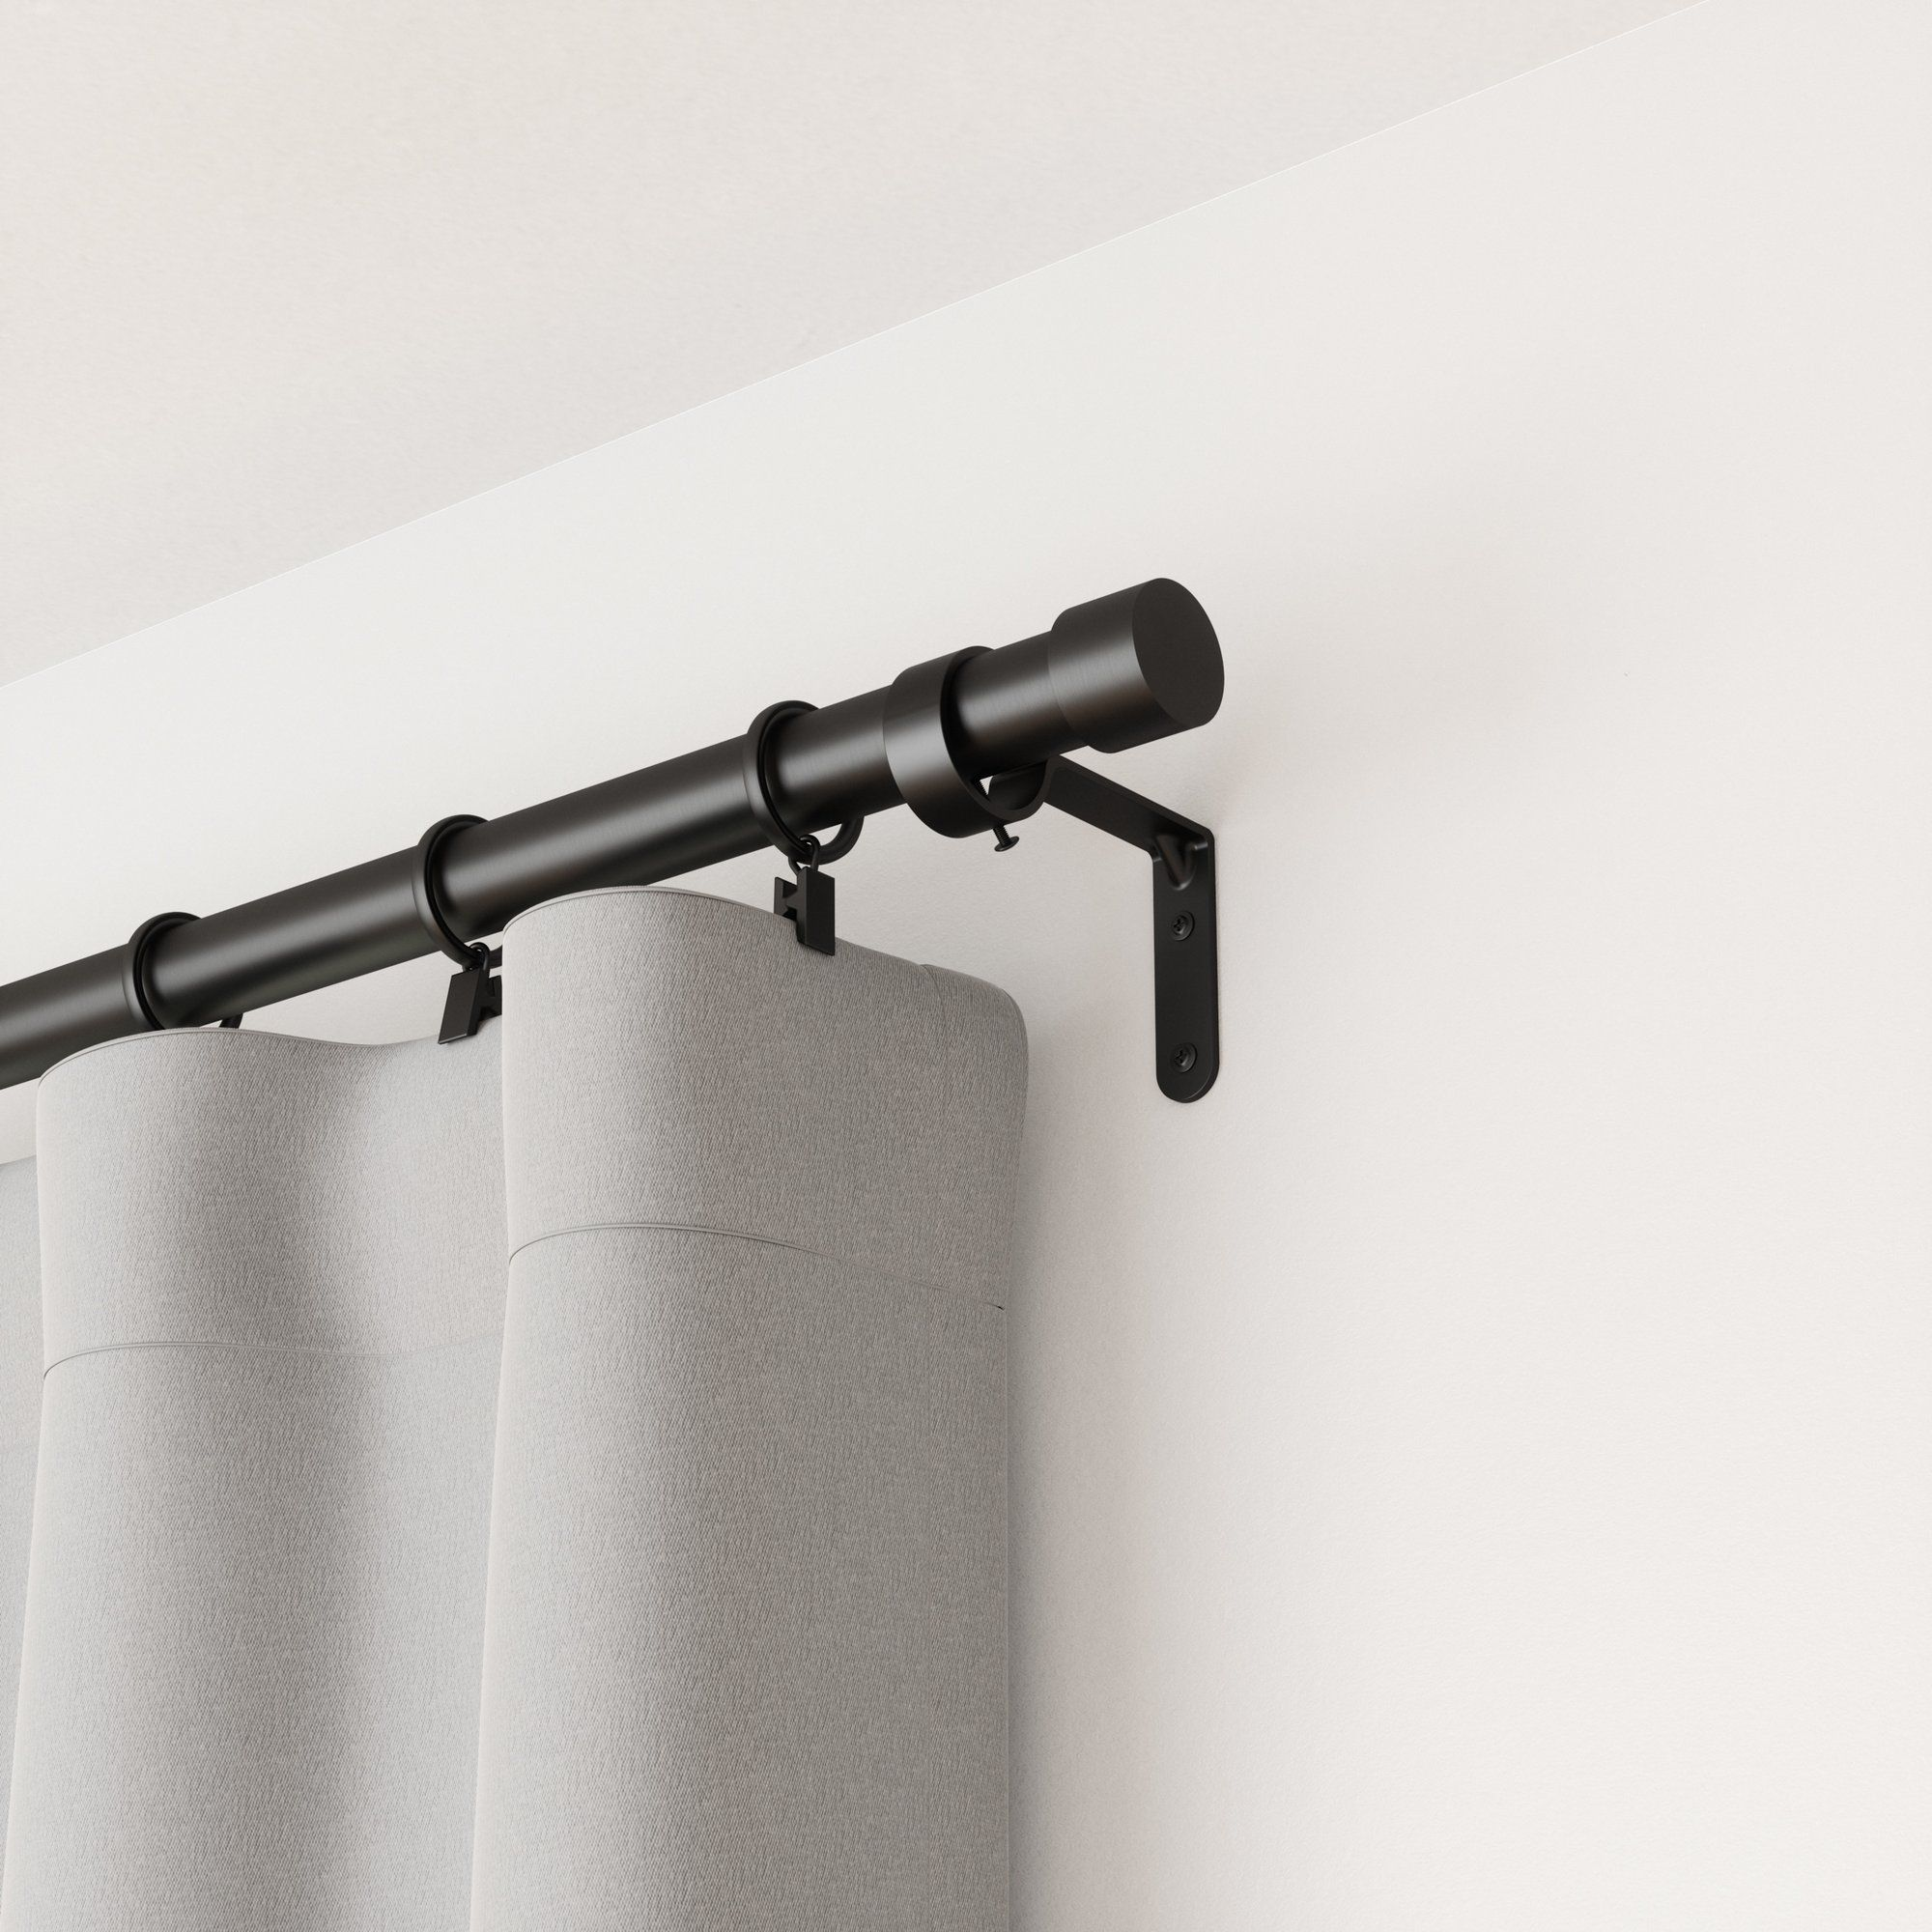 Cappa Curtain Rod In 2020 Curtain Rods Black Curtain Rods Double Rod Curtains